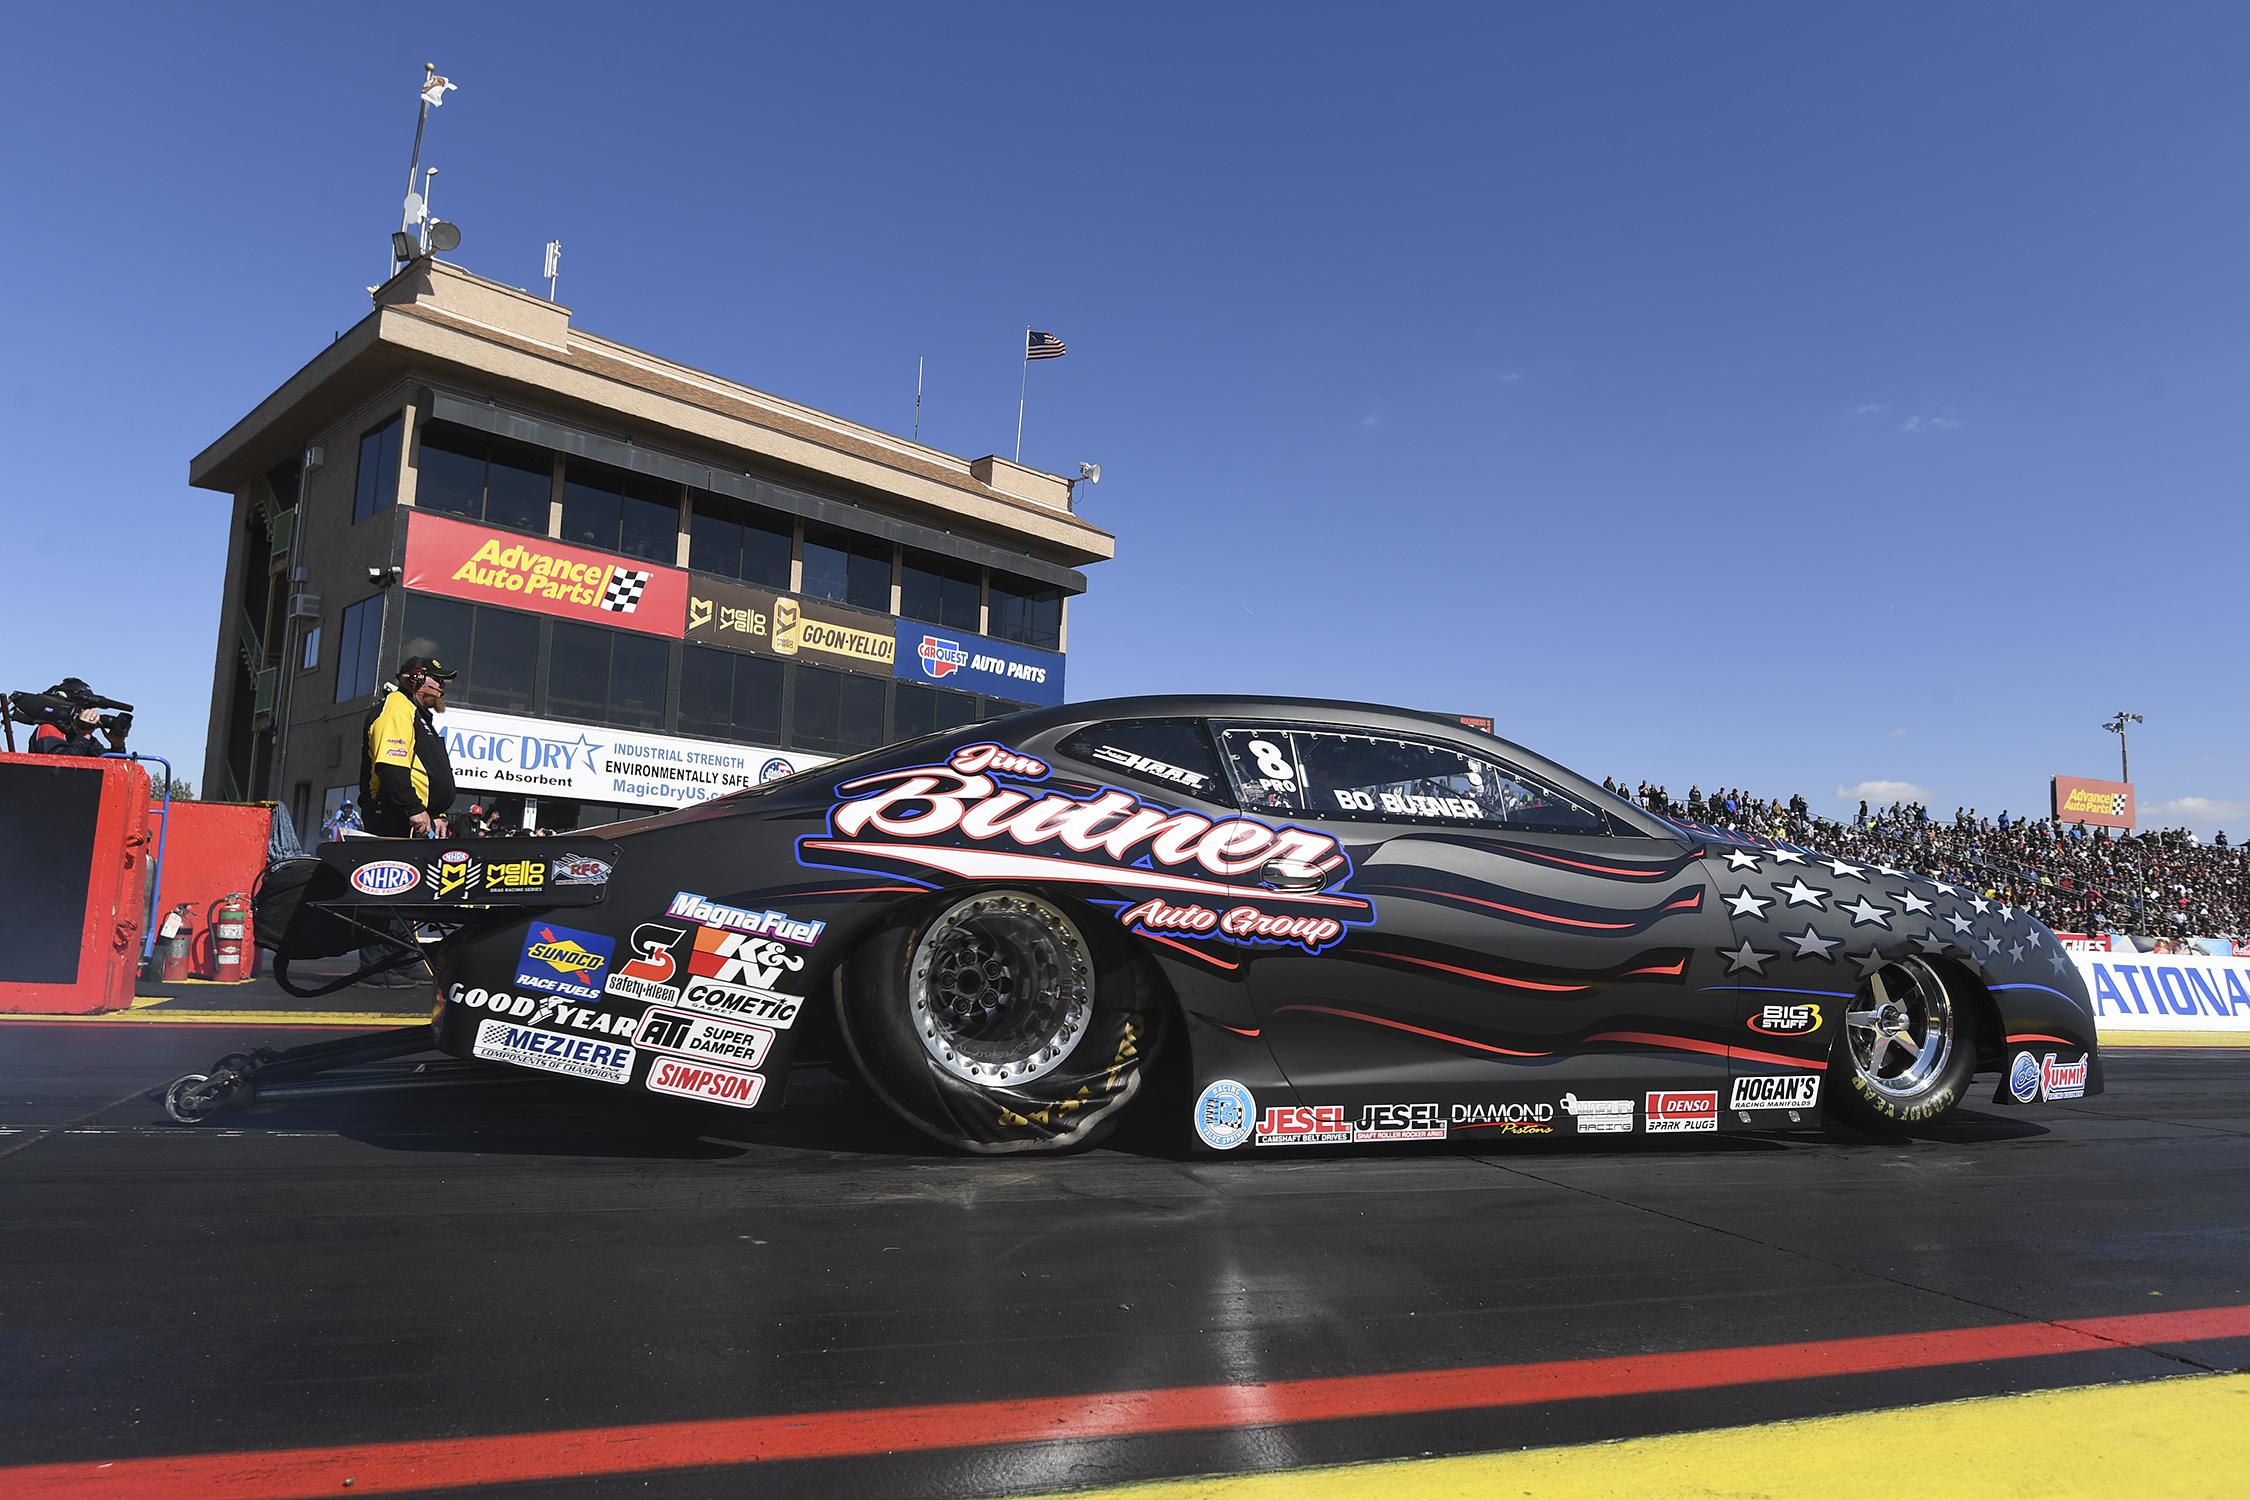 Jim Butner Auto Group's Pro Stock driver Bo Butner racing on Saturday at the 2019 NHRA Arizona Nationals